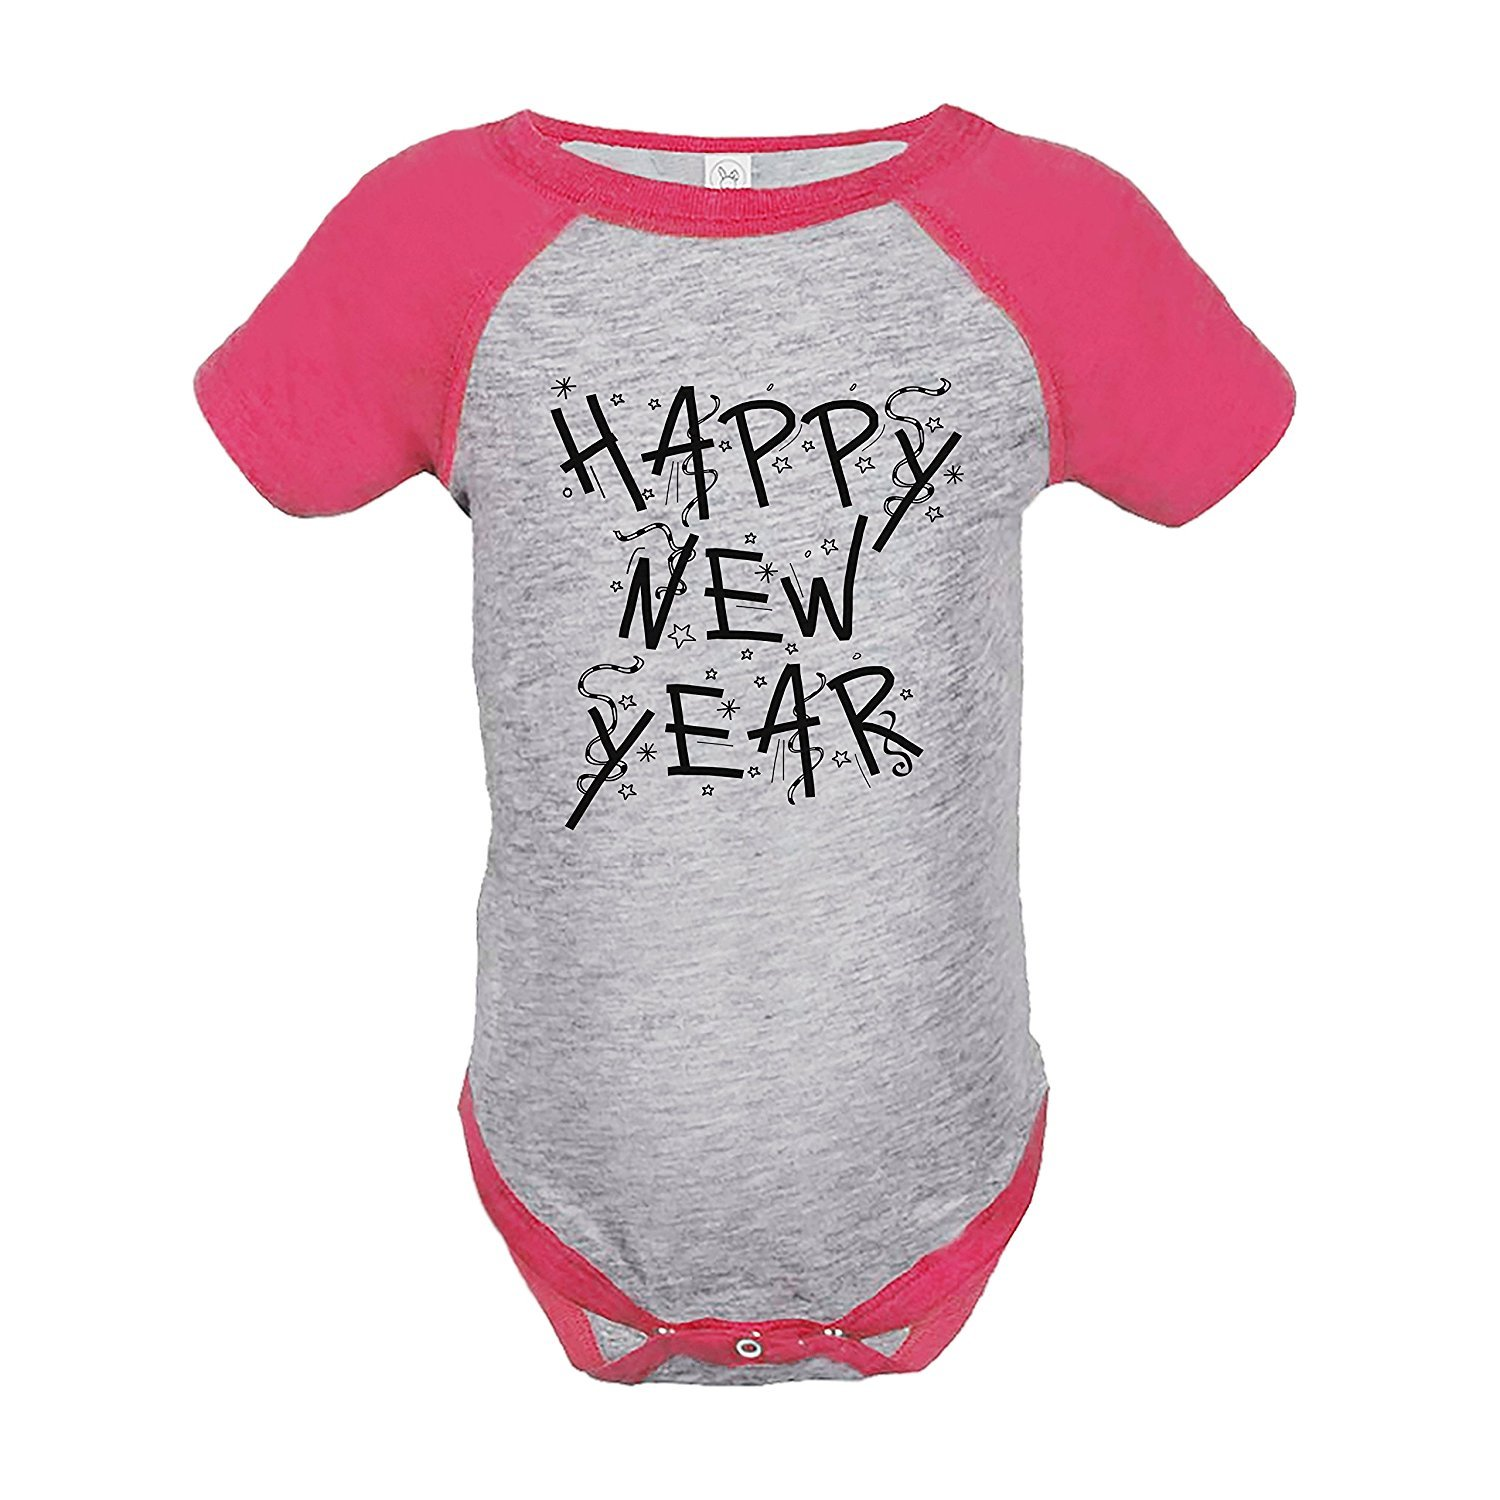 7 ate 9 Apparel Kids Happy New Year's Eve Pink Raglan Onepiece - 6 Months